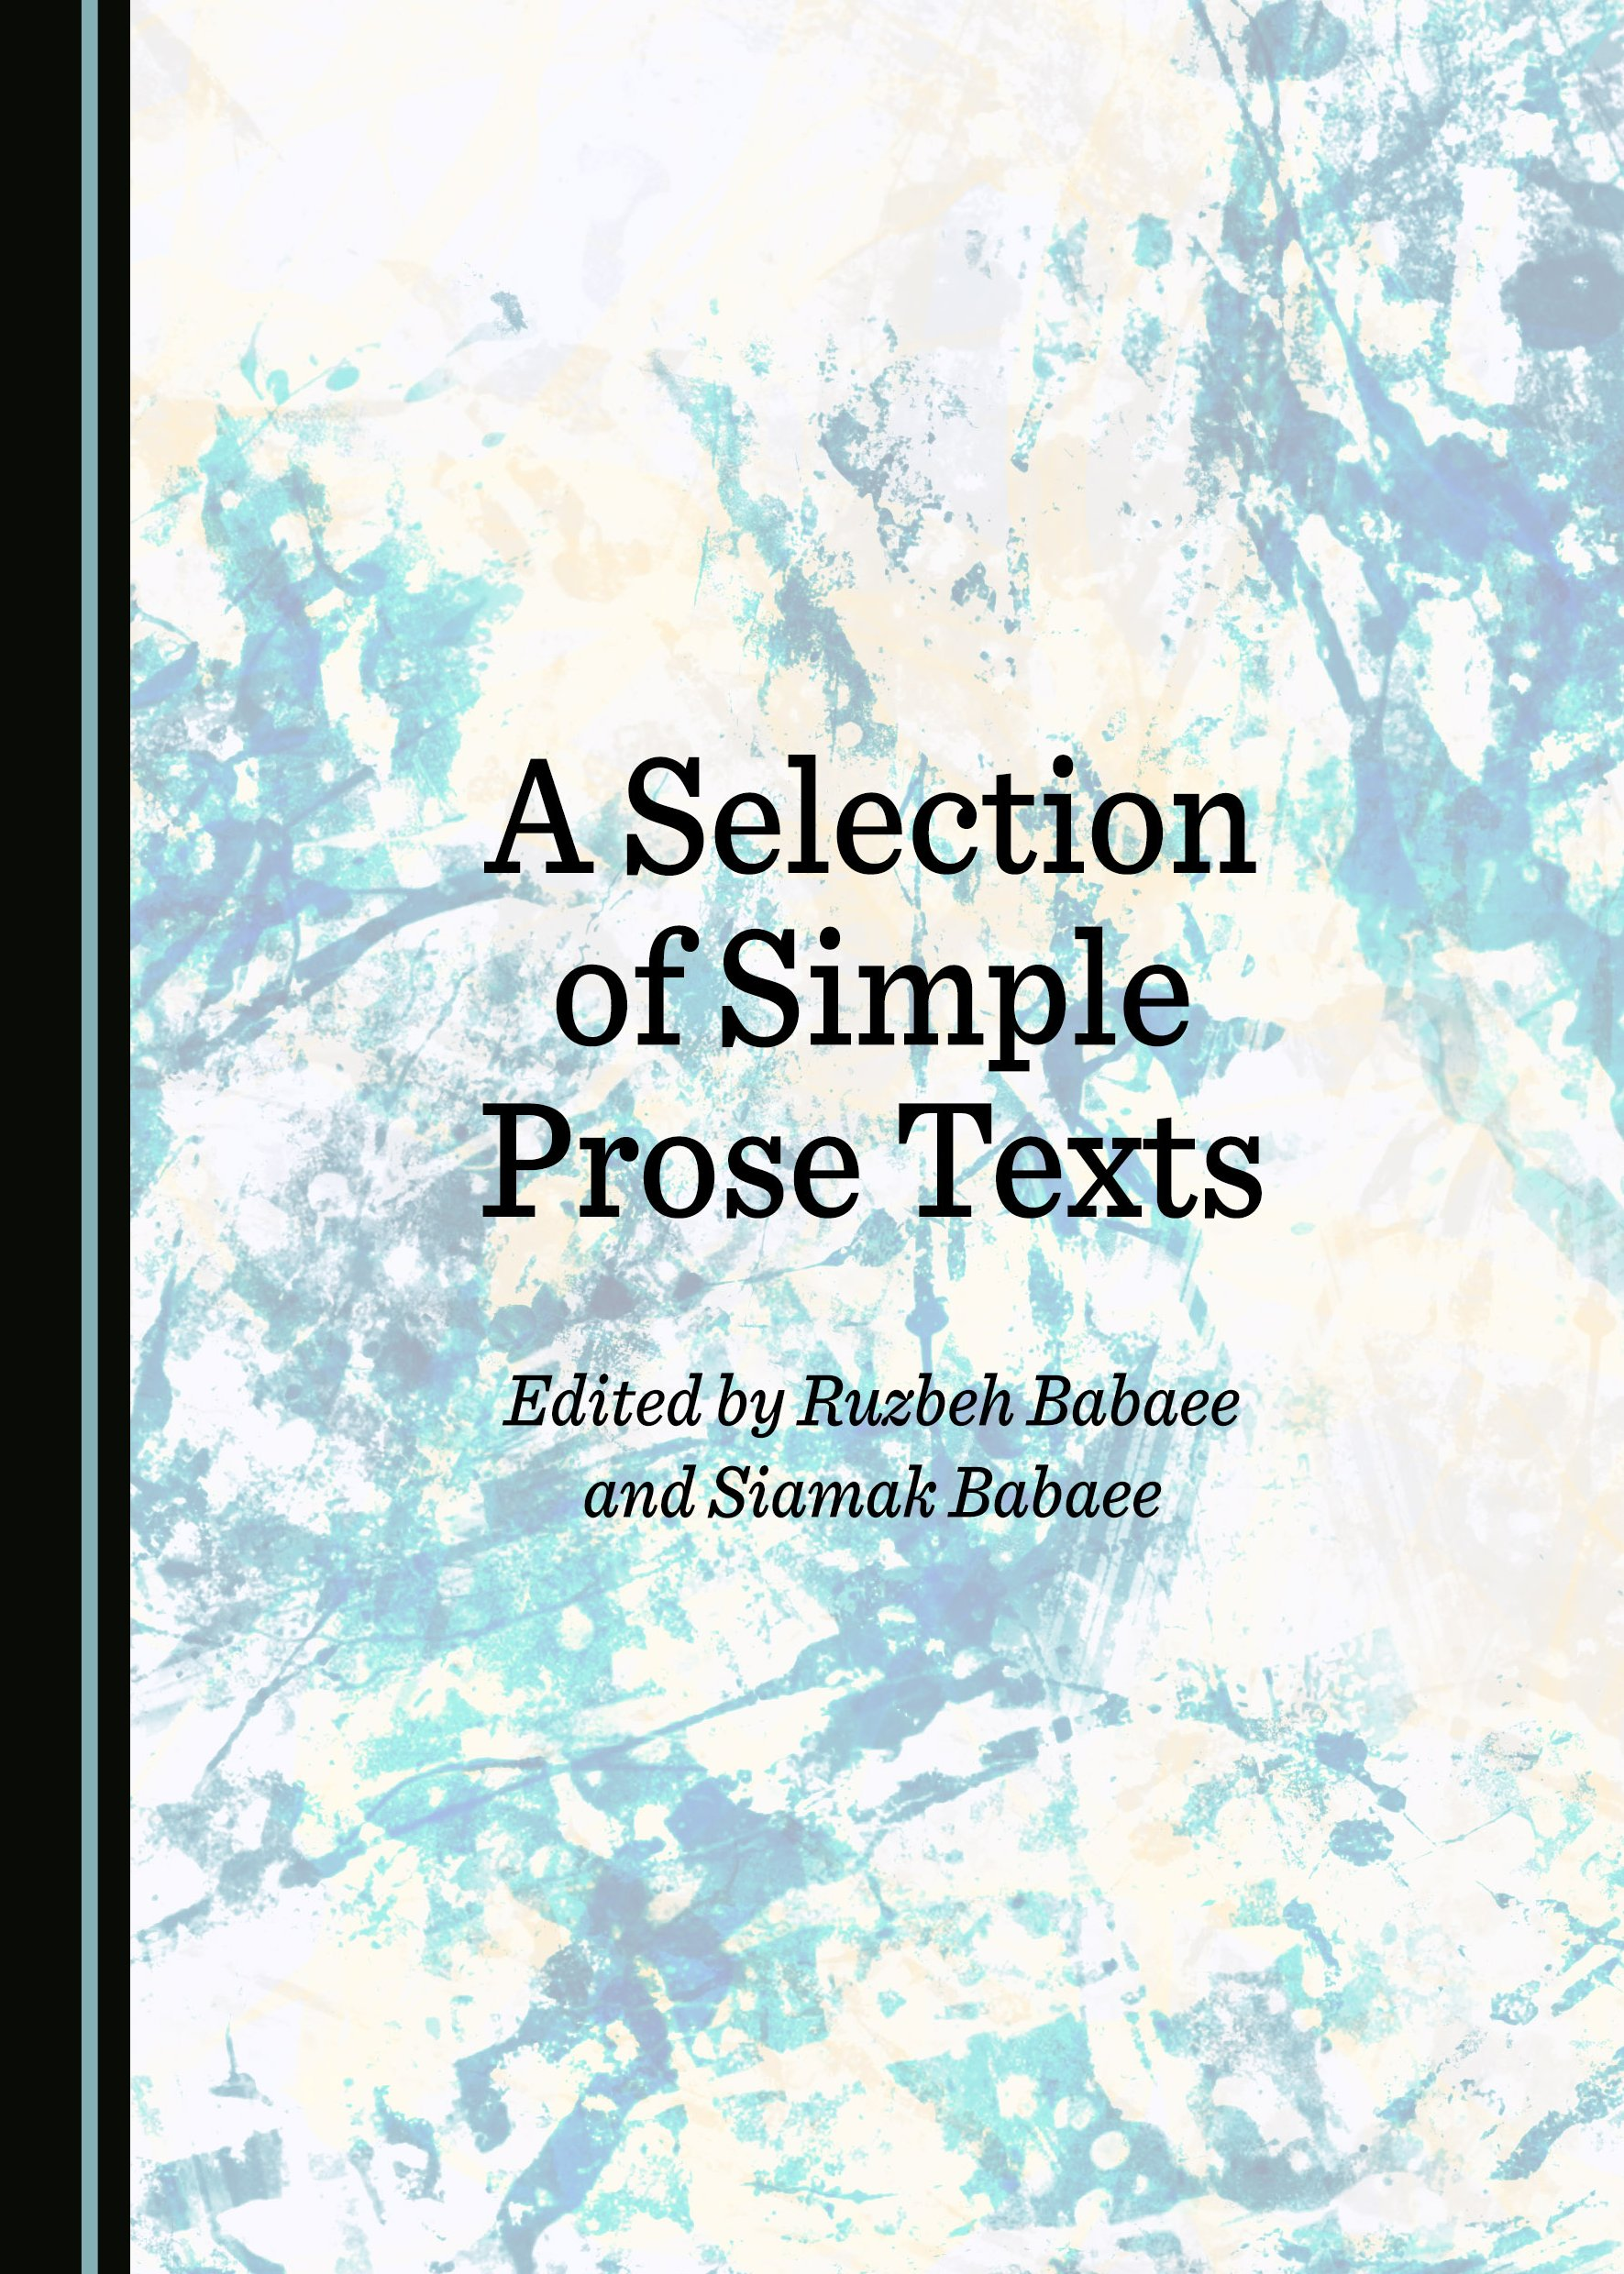 A Selection of Simple Prose Texts